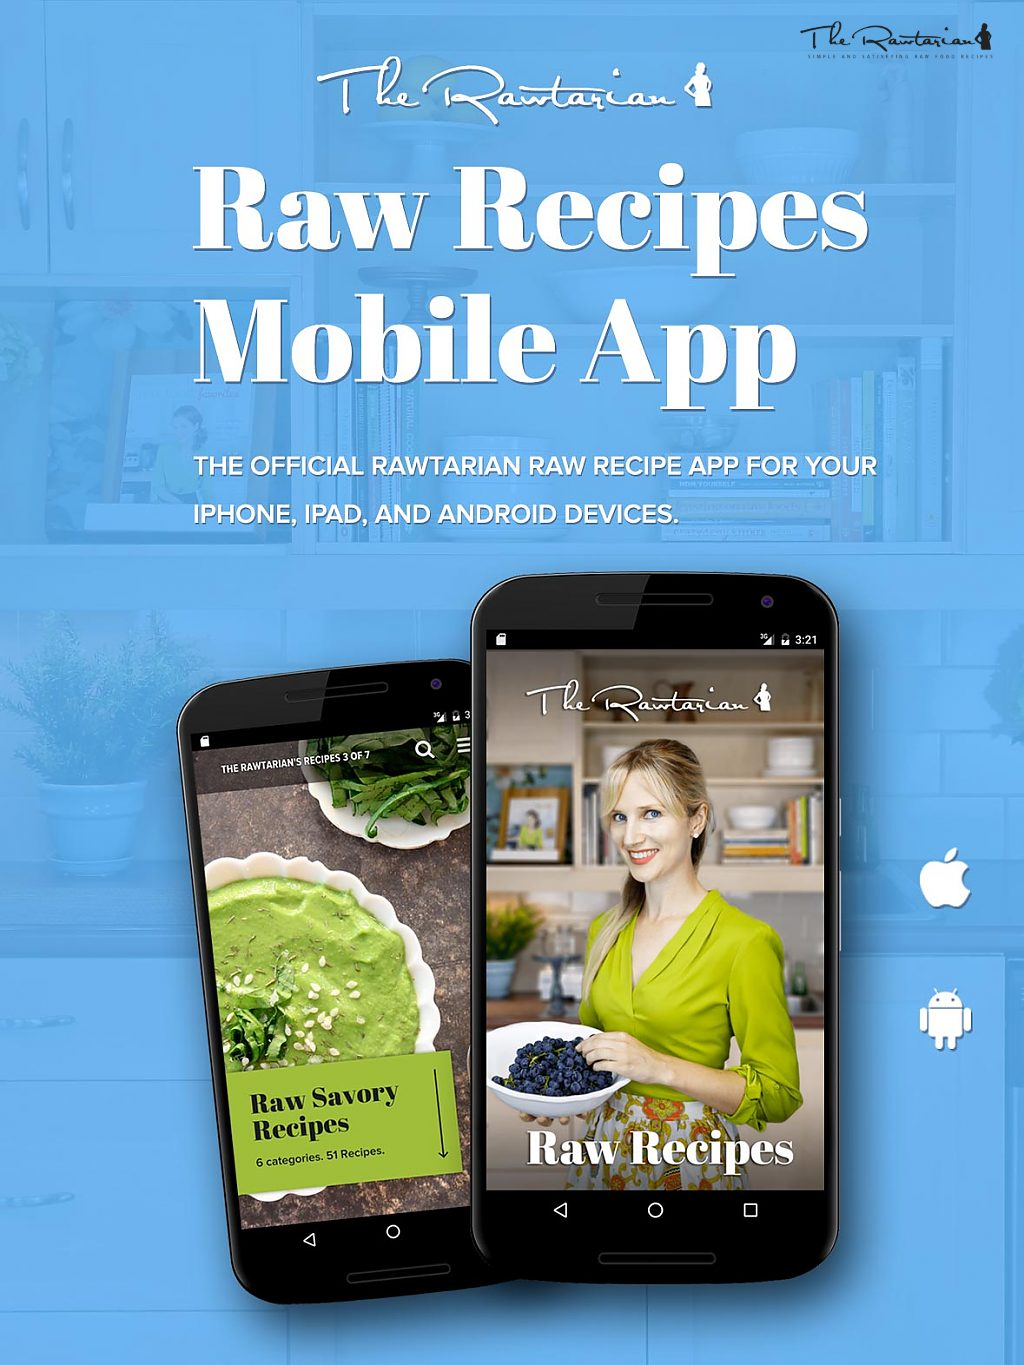 Raw food apps the rawtarian if youre always looking for new raw vegan dishes to prepare or keep going back to the website for those particular recipes youre so fond of forumfinder Gallery